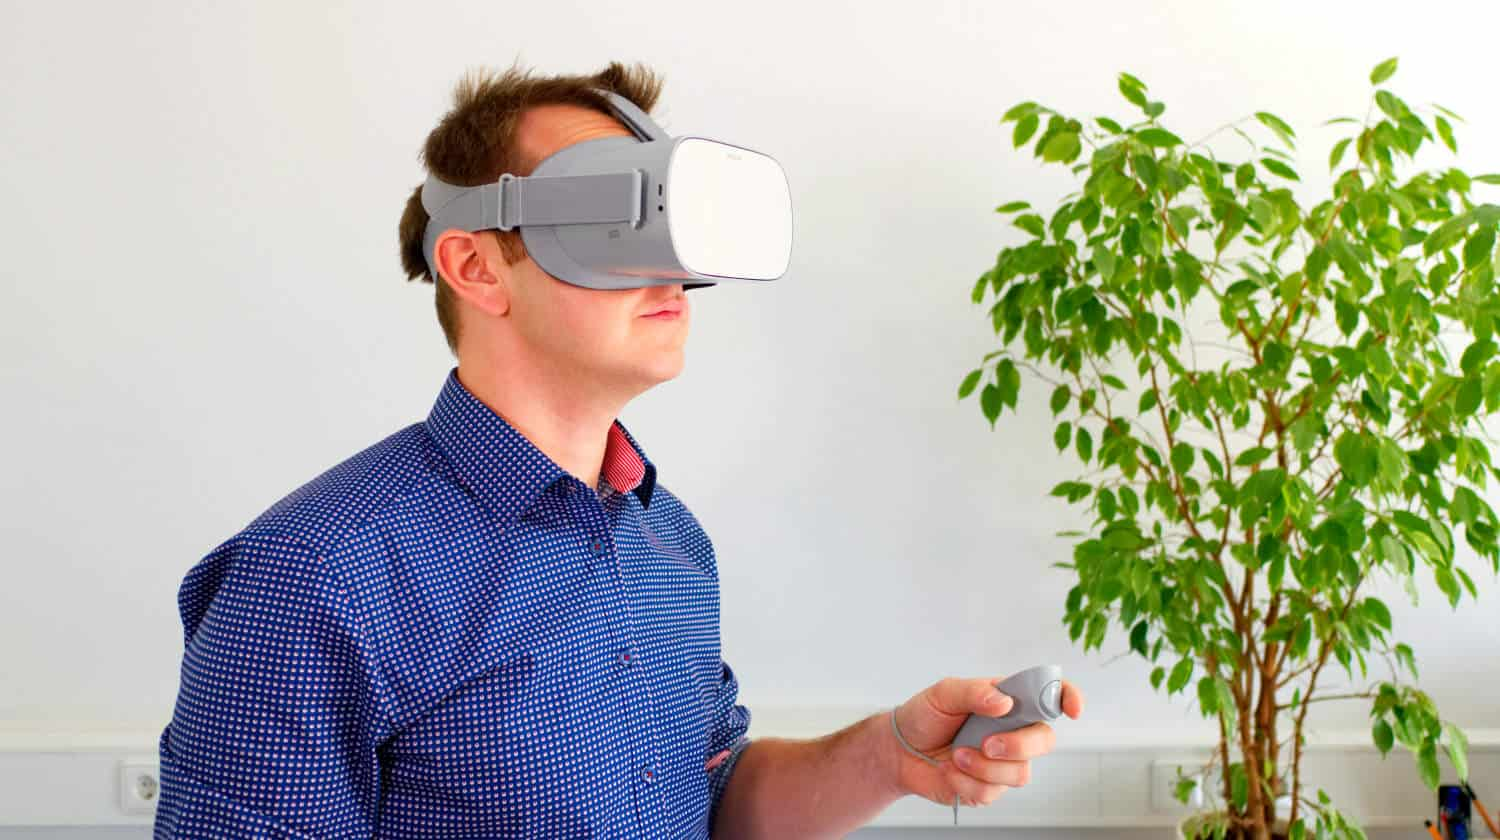 Featured | Man wearing VR glasses | What Is VR? How Virtual Reality Will Change The Future | virtual reality headset | playstation vr headset | virtual reality experience